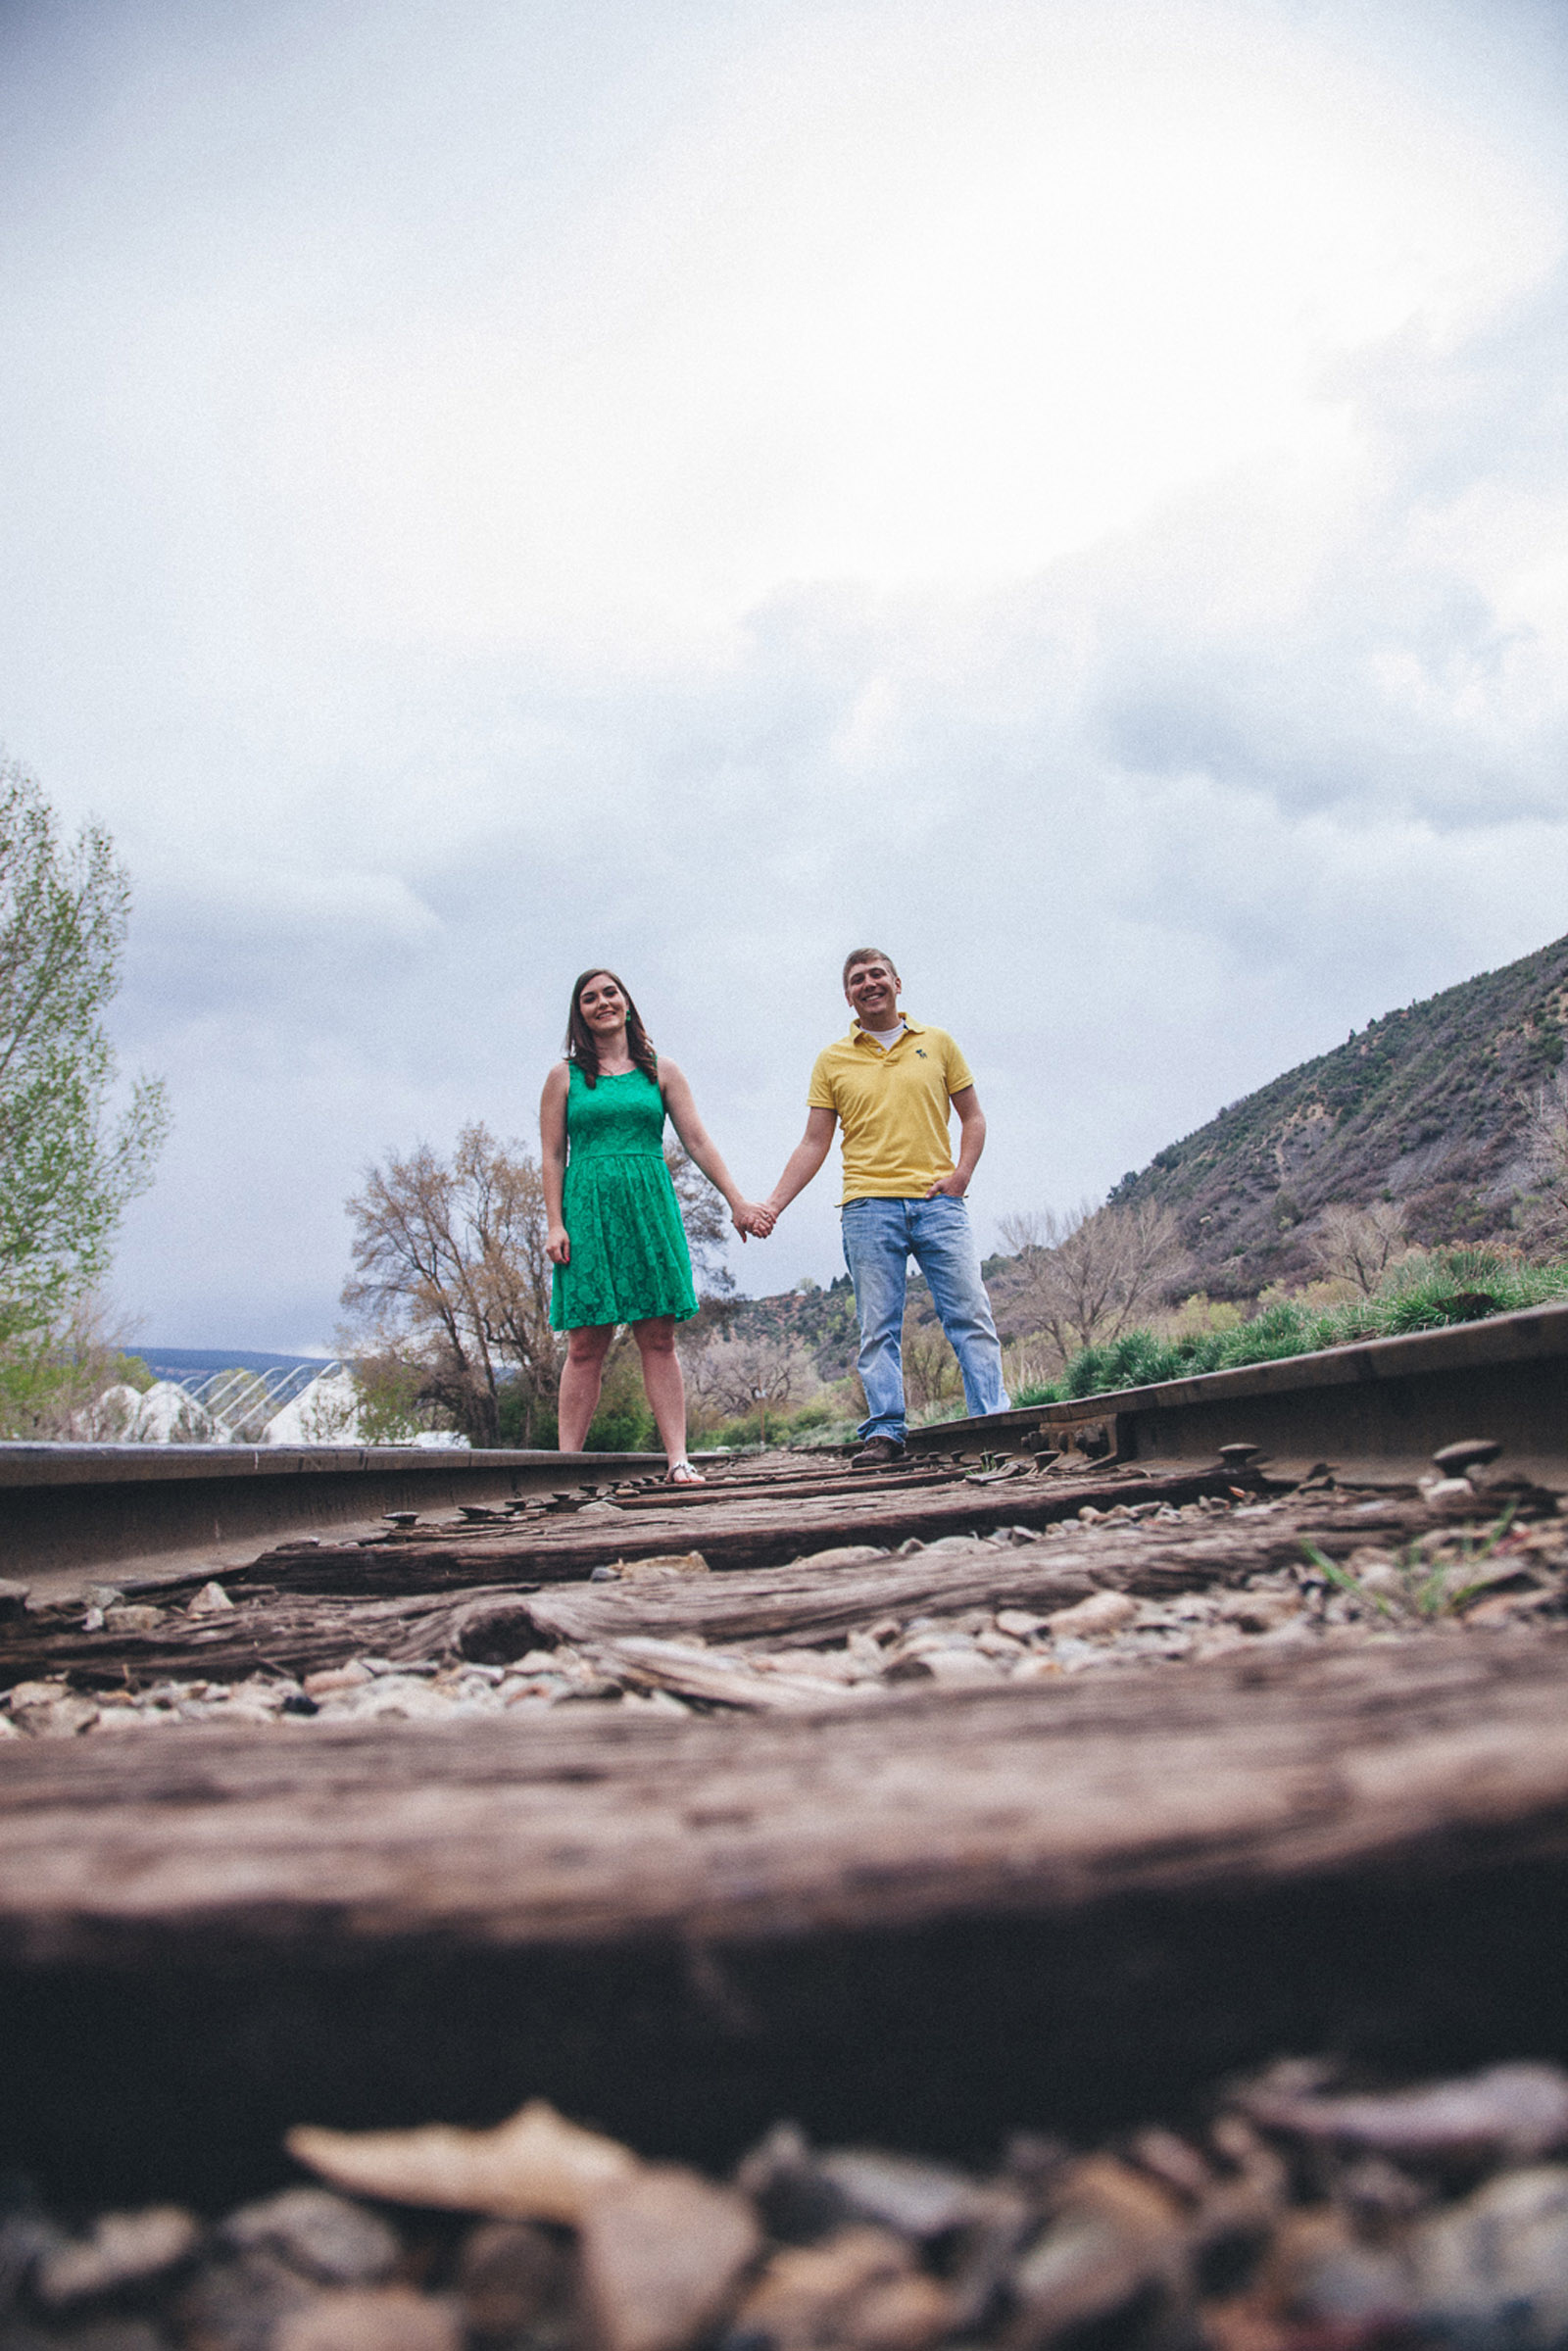 023-engagement-trees-fun-wedding-train-aughing-durango-colorado-farmington